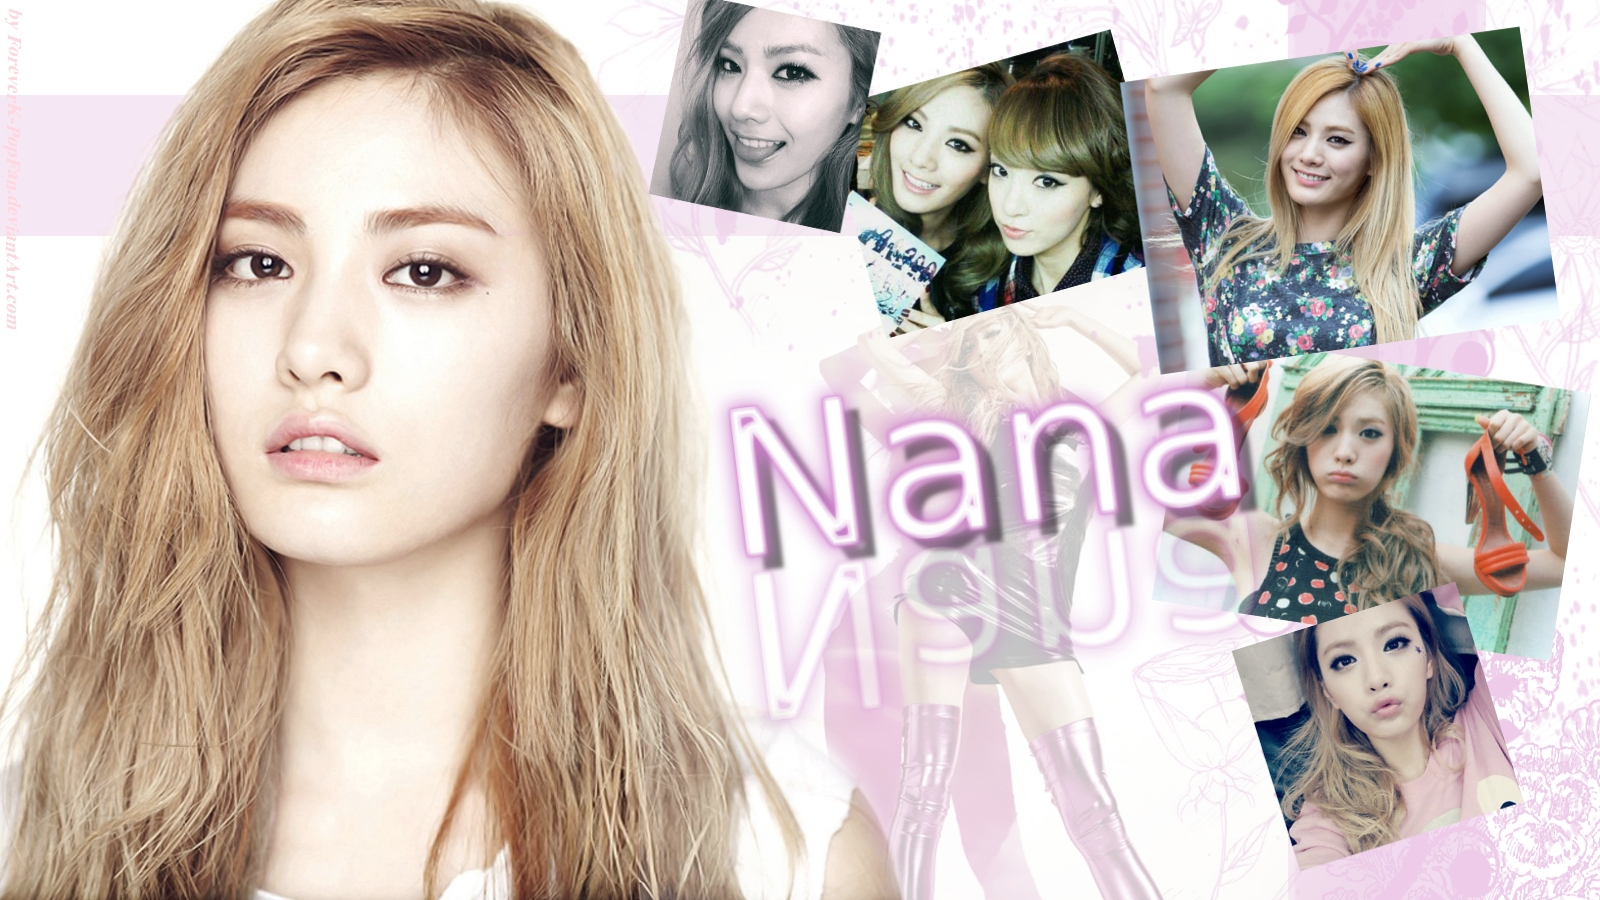 After School Nana Wallpaper by ForeverK PoPFan 1600x900